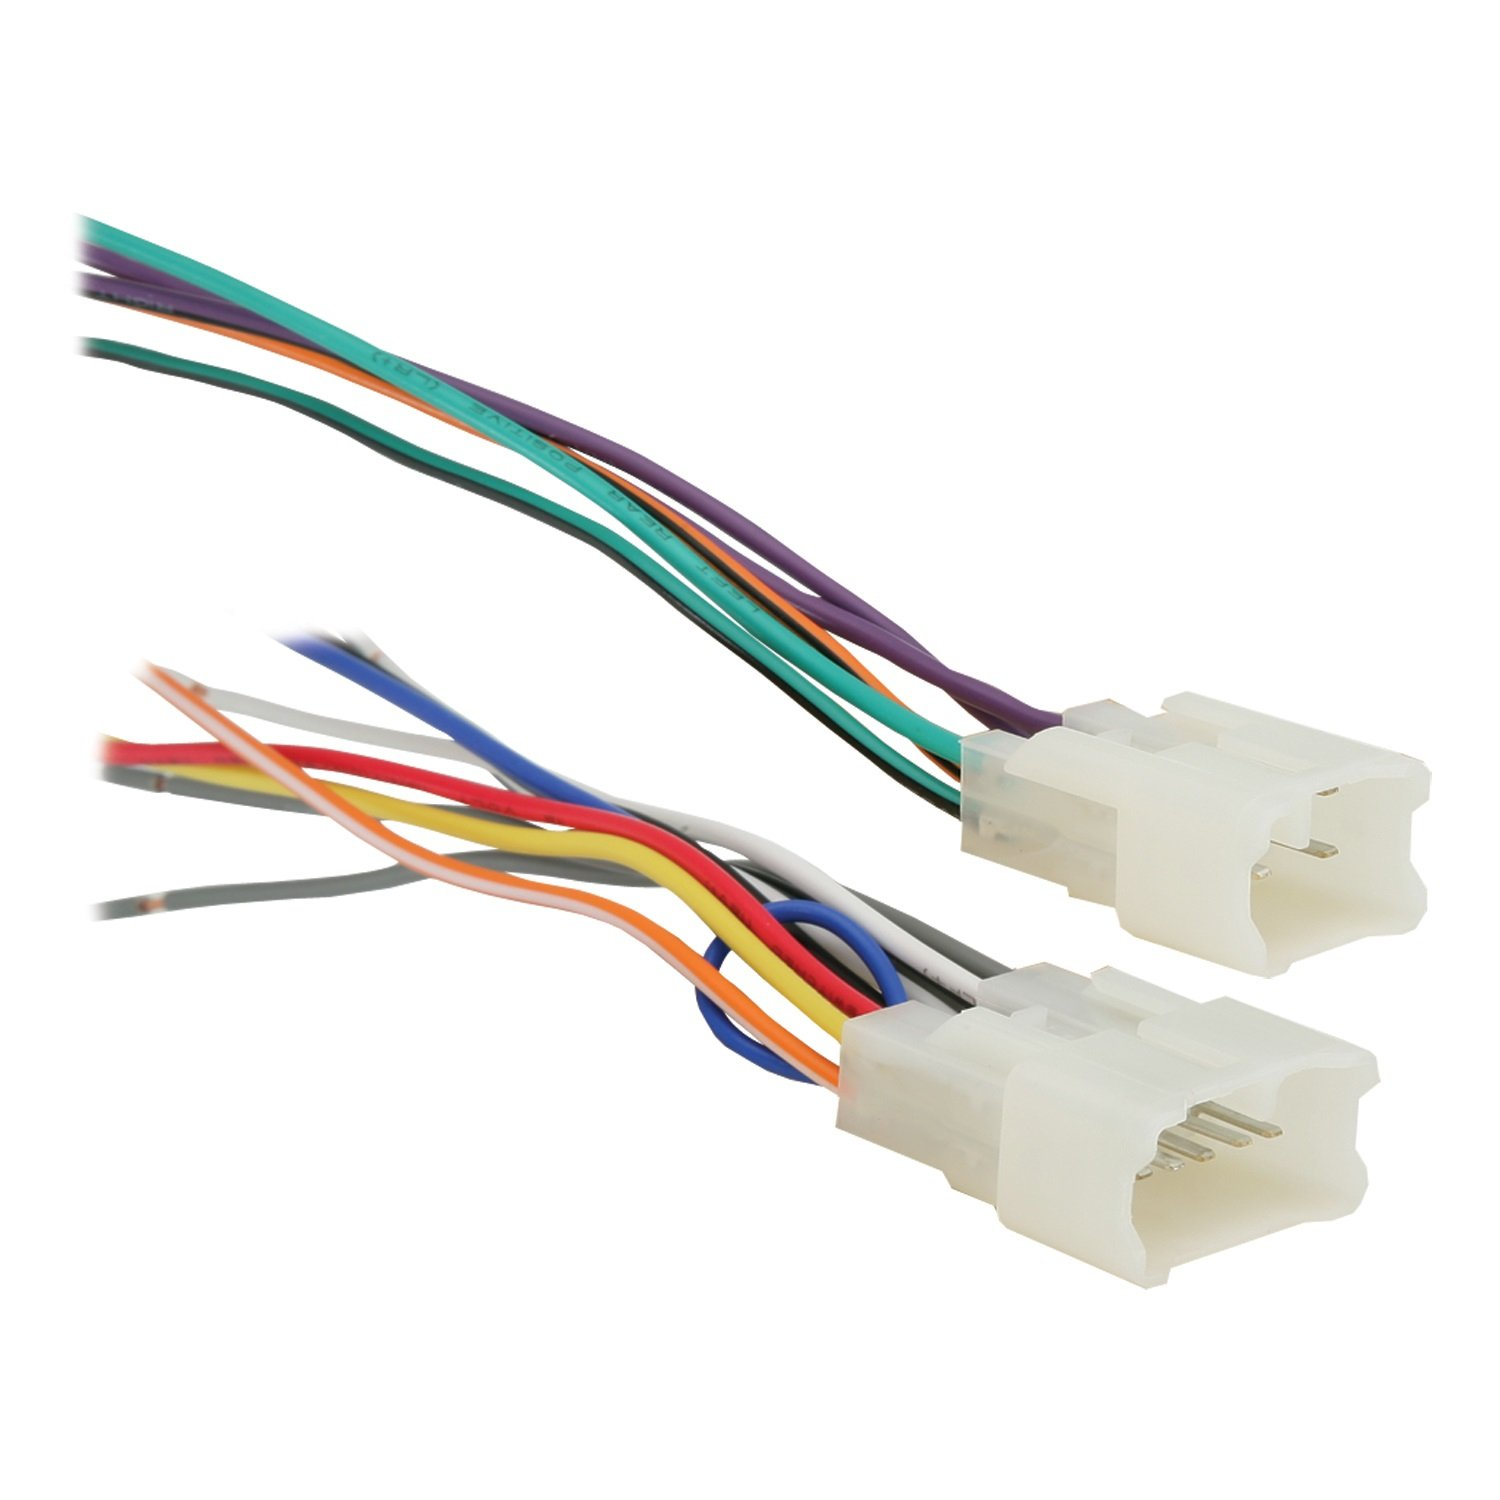 61ifTKeRTLL._SL1500_ amazon com wiring harnesses electrical automotive 1985 F150 at bakdesigns.co